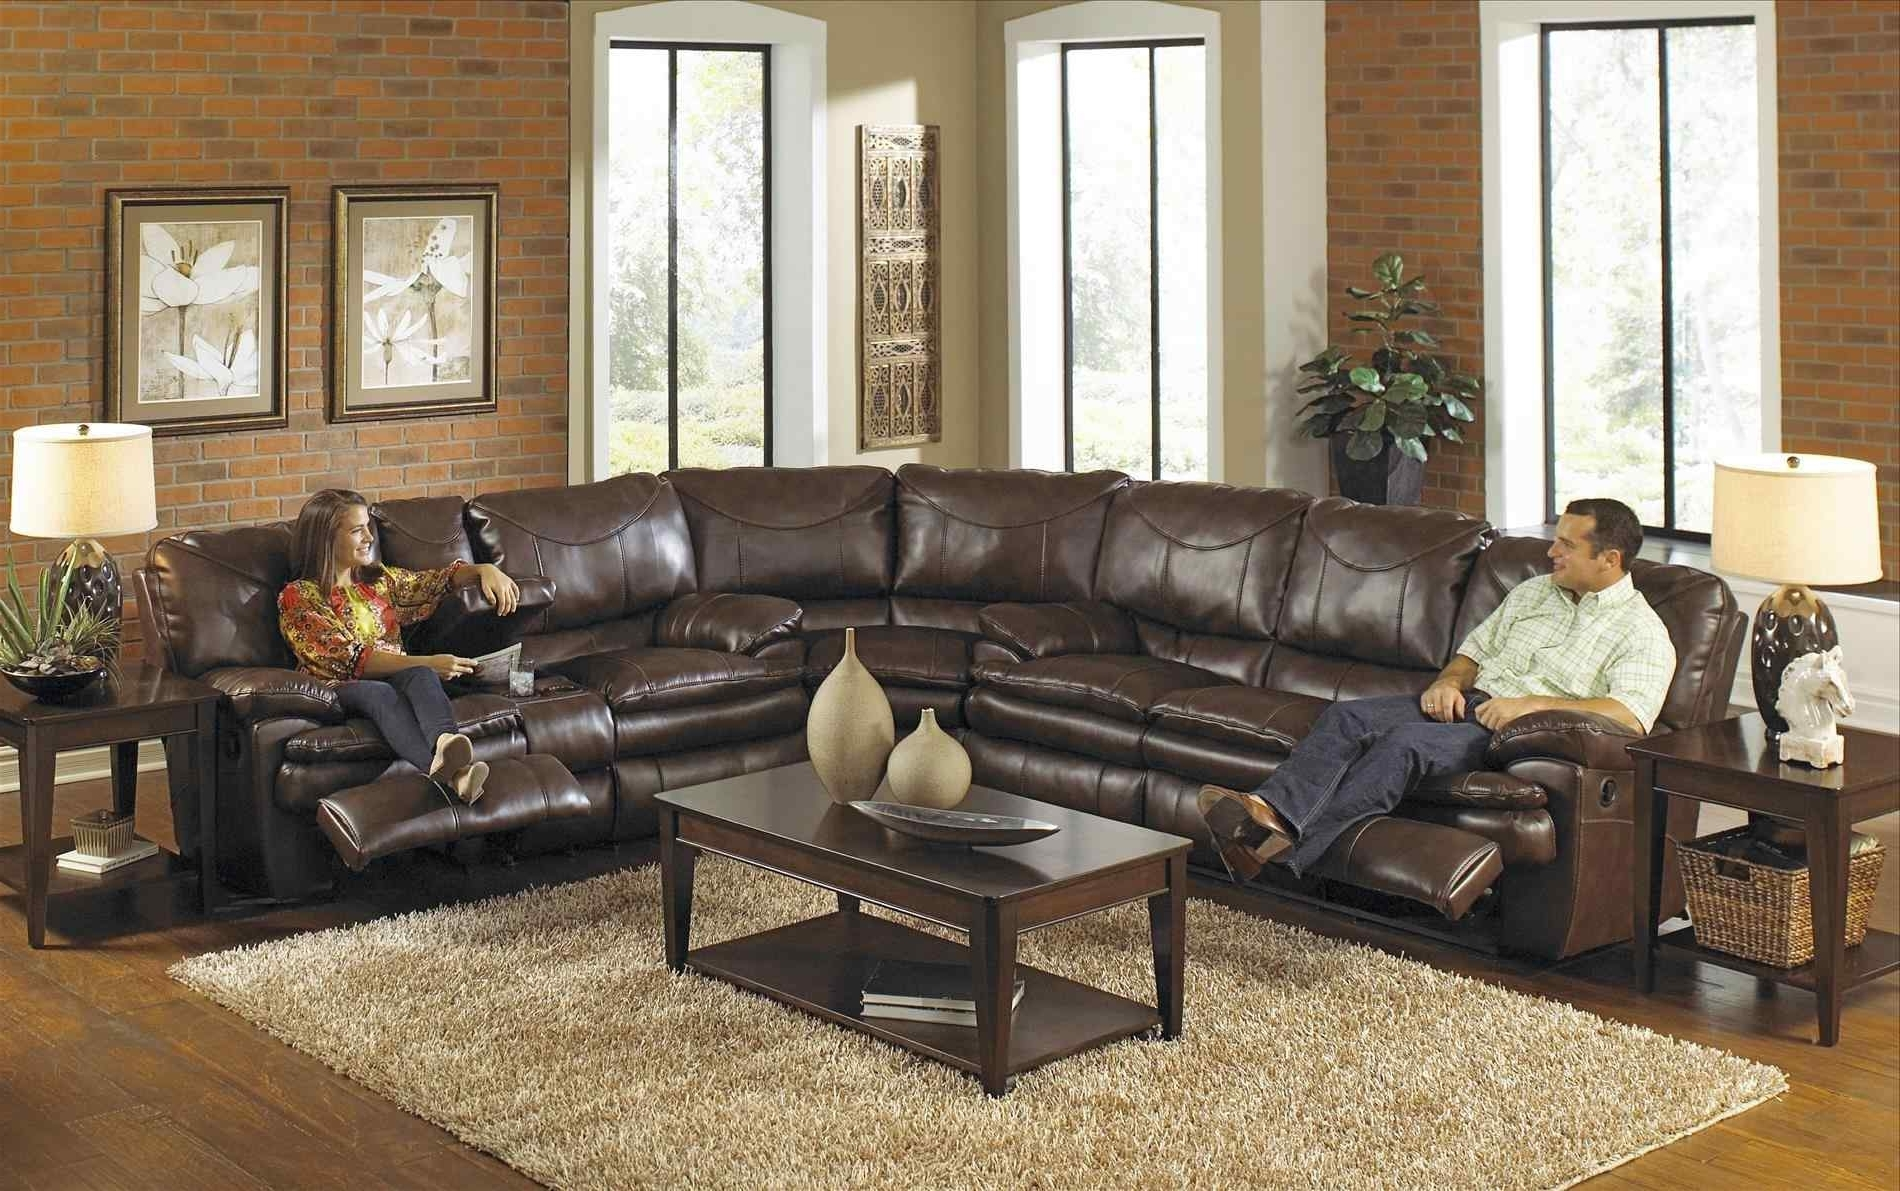 Thomasville Sectional Sofas Pertaining To Most Up To Date The Images Collection Of Concord Sectional Price Leather Furniture (View 8 of 15)